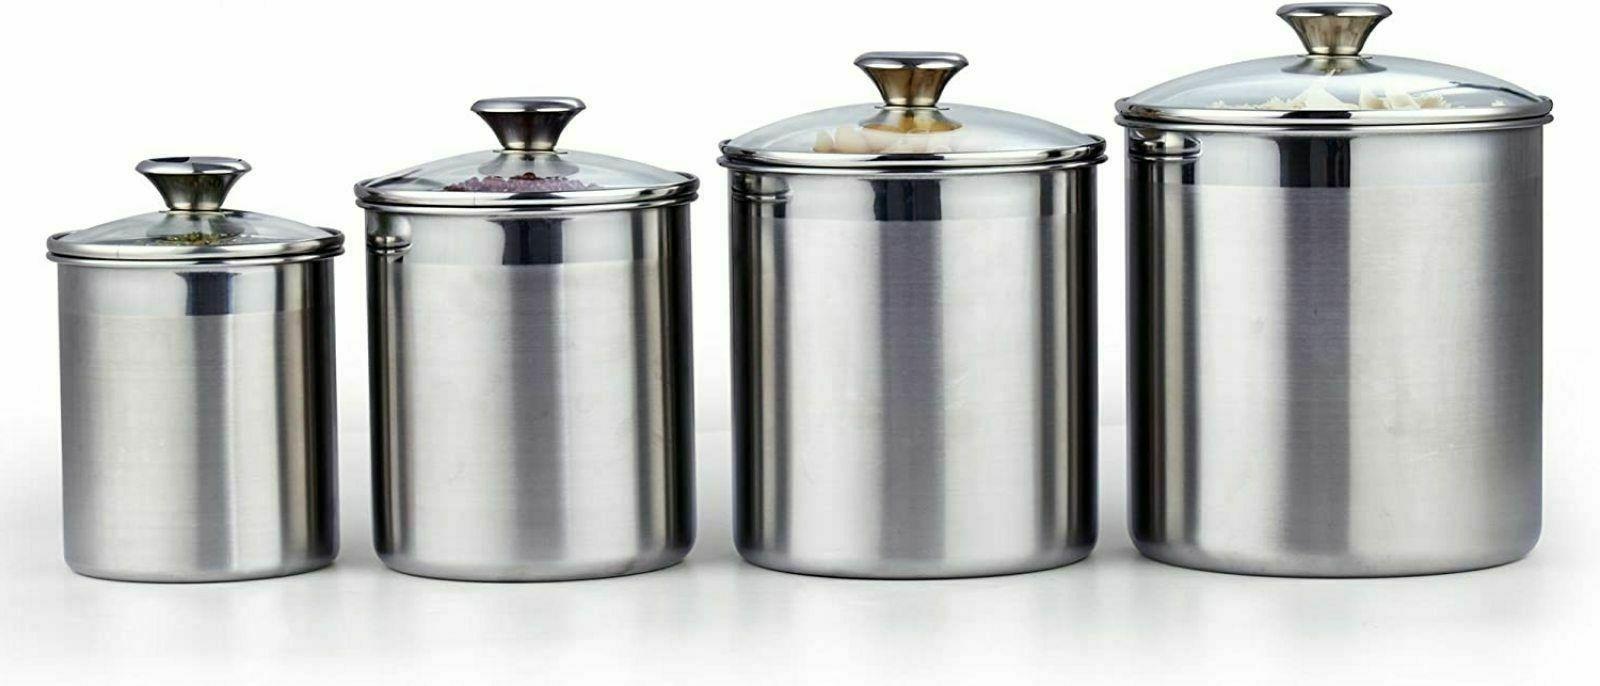 4 Piece Canister Stainless Steel Tempered Glass Lids New